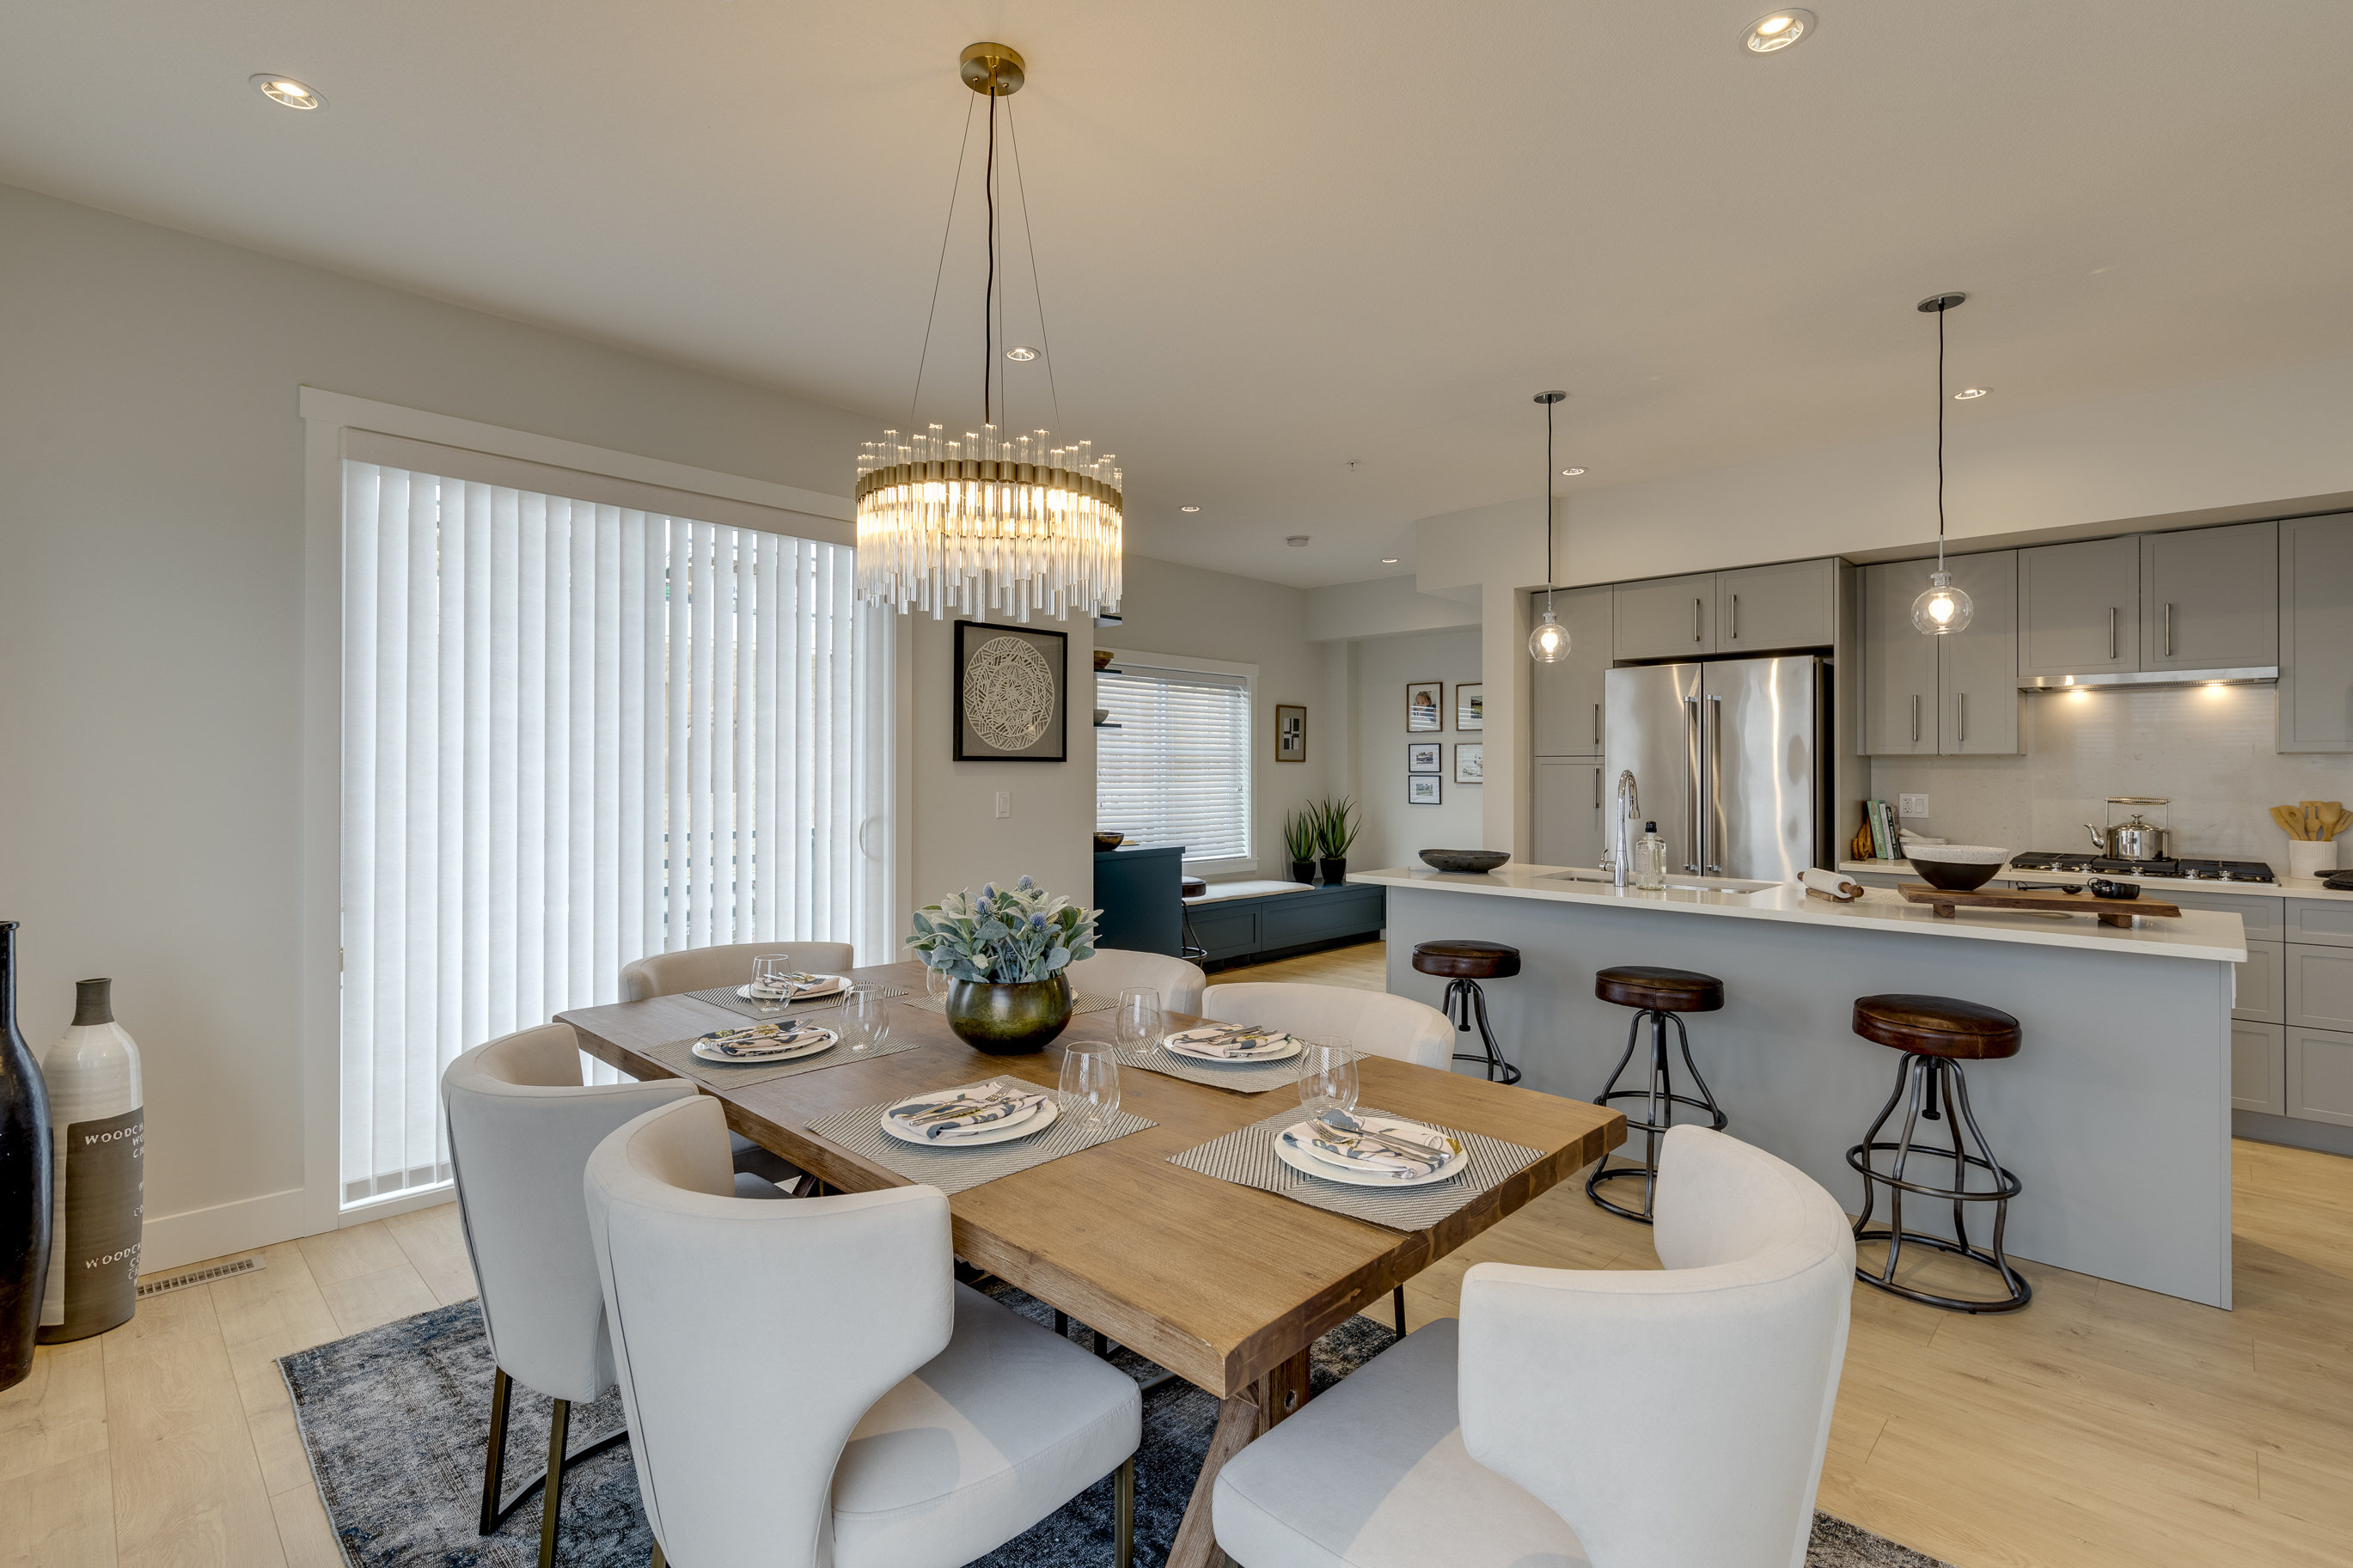 Dining Area - 22127 48a Ave Langley Twp, BC V3A 3Z7 Canada!